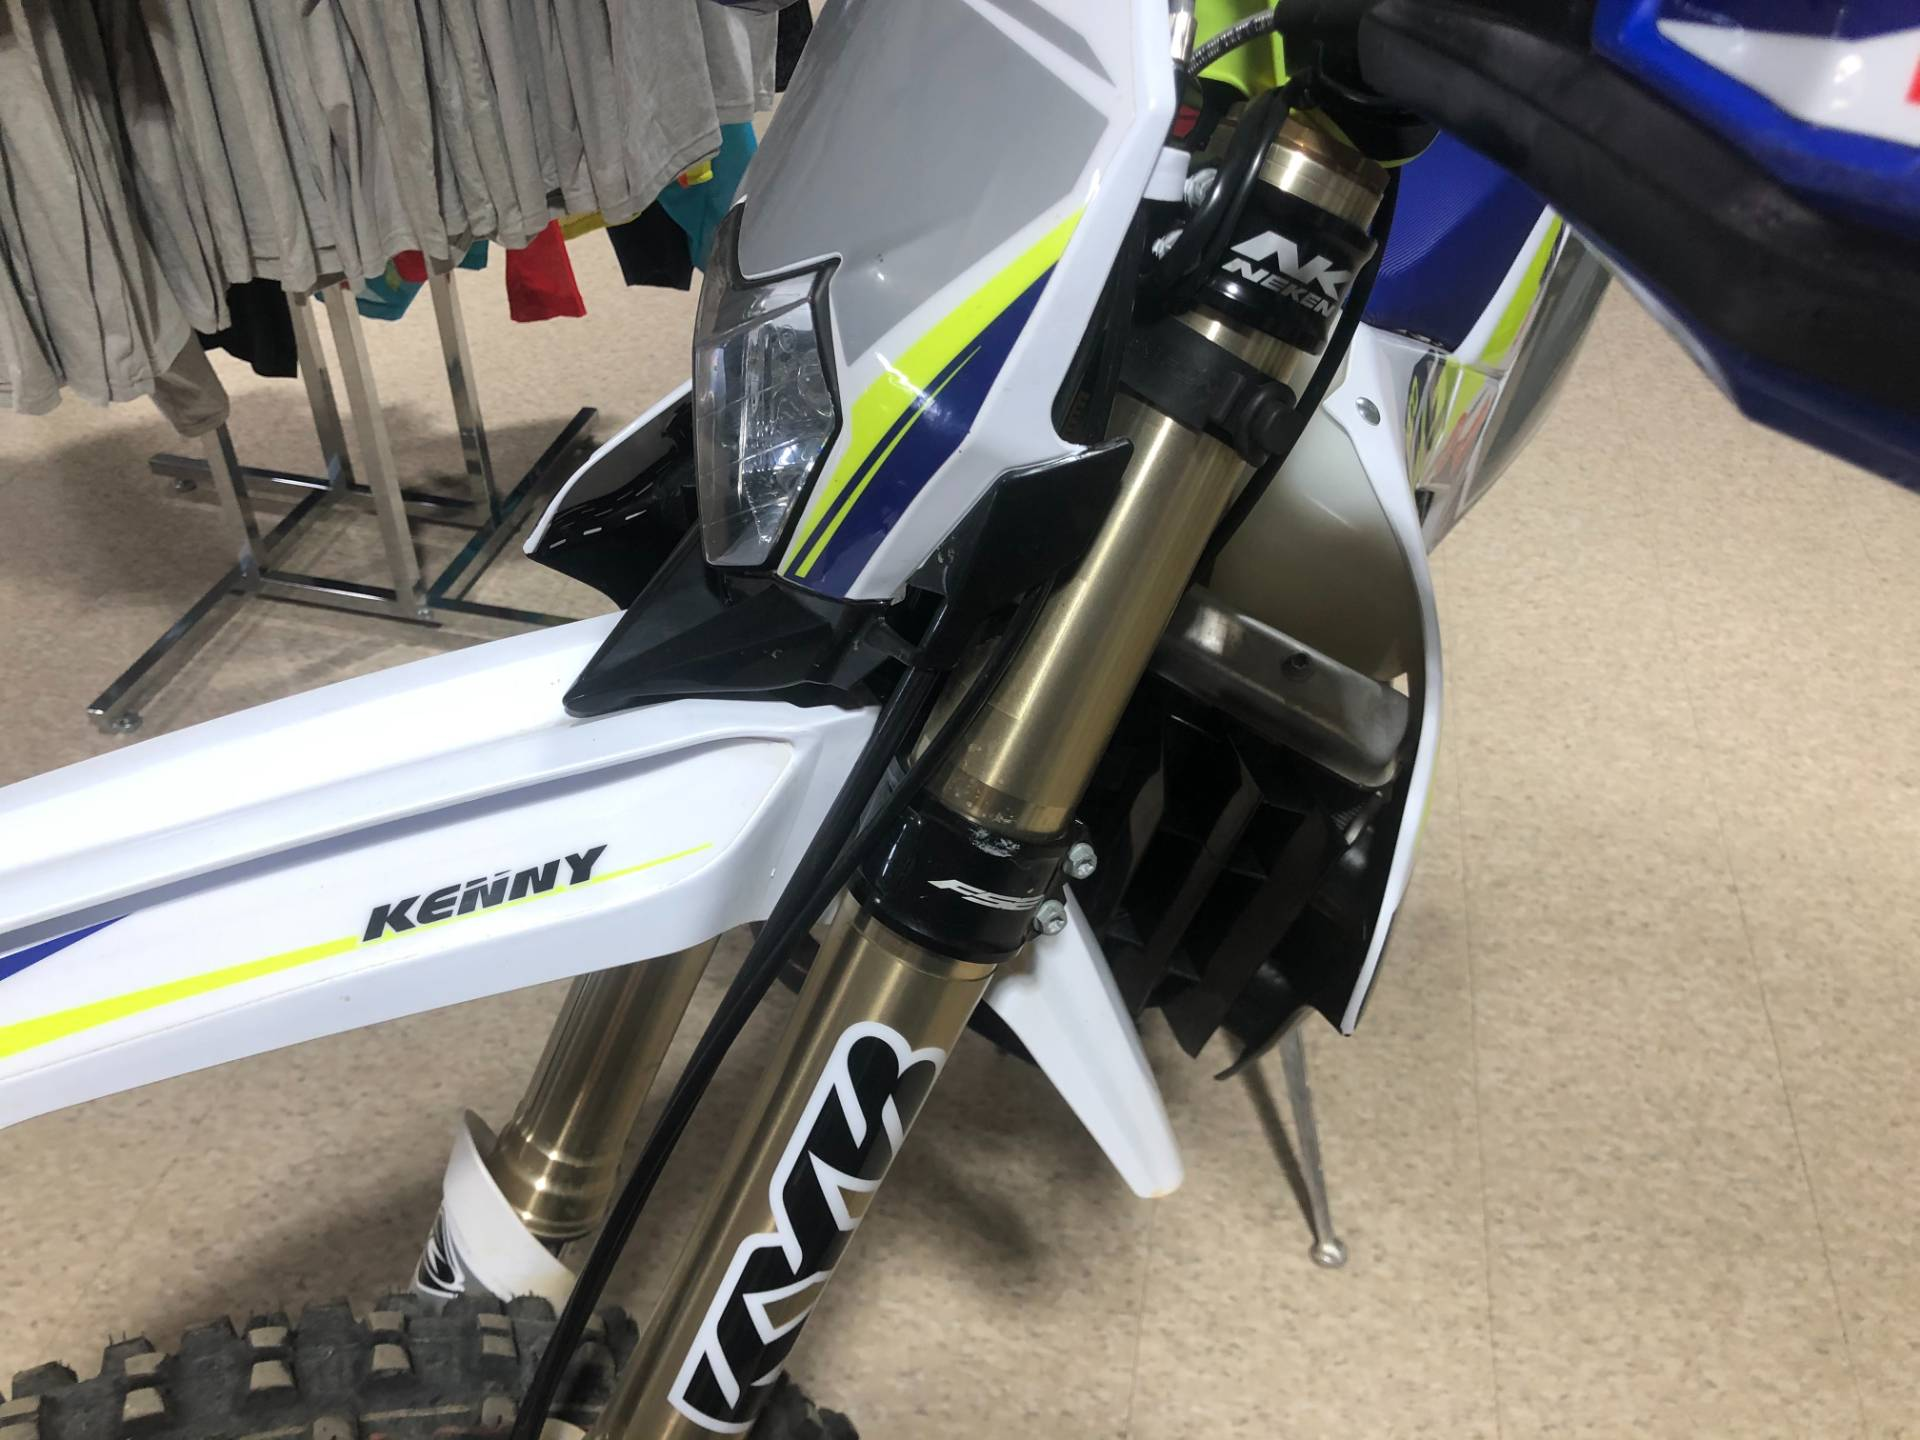 2020 Sherco 300 SEF Factory 4T in Slovan, Pennsylvania - Photo 4